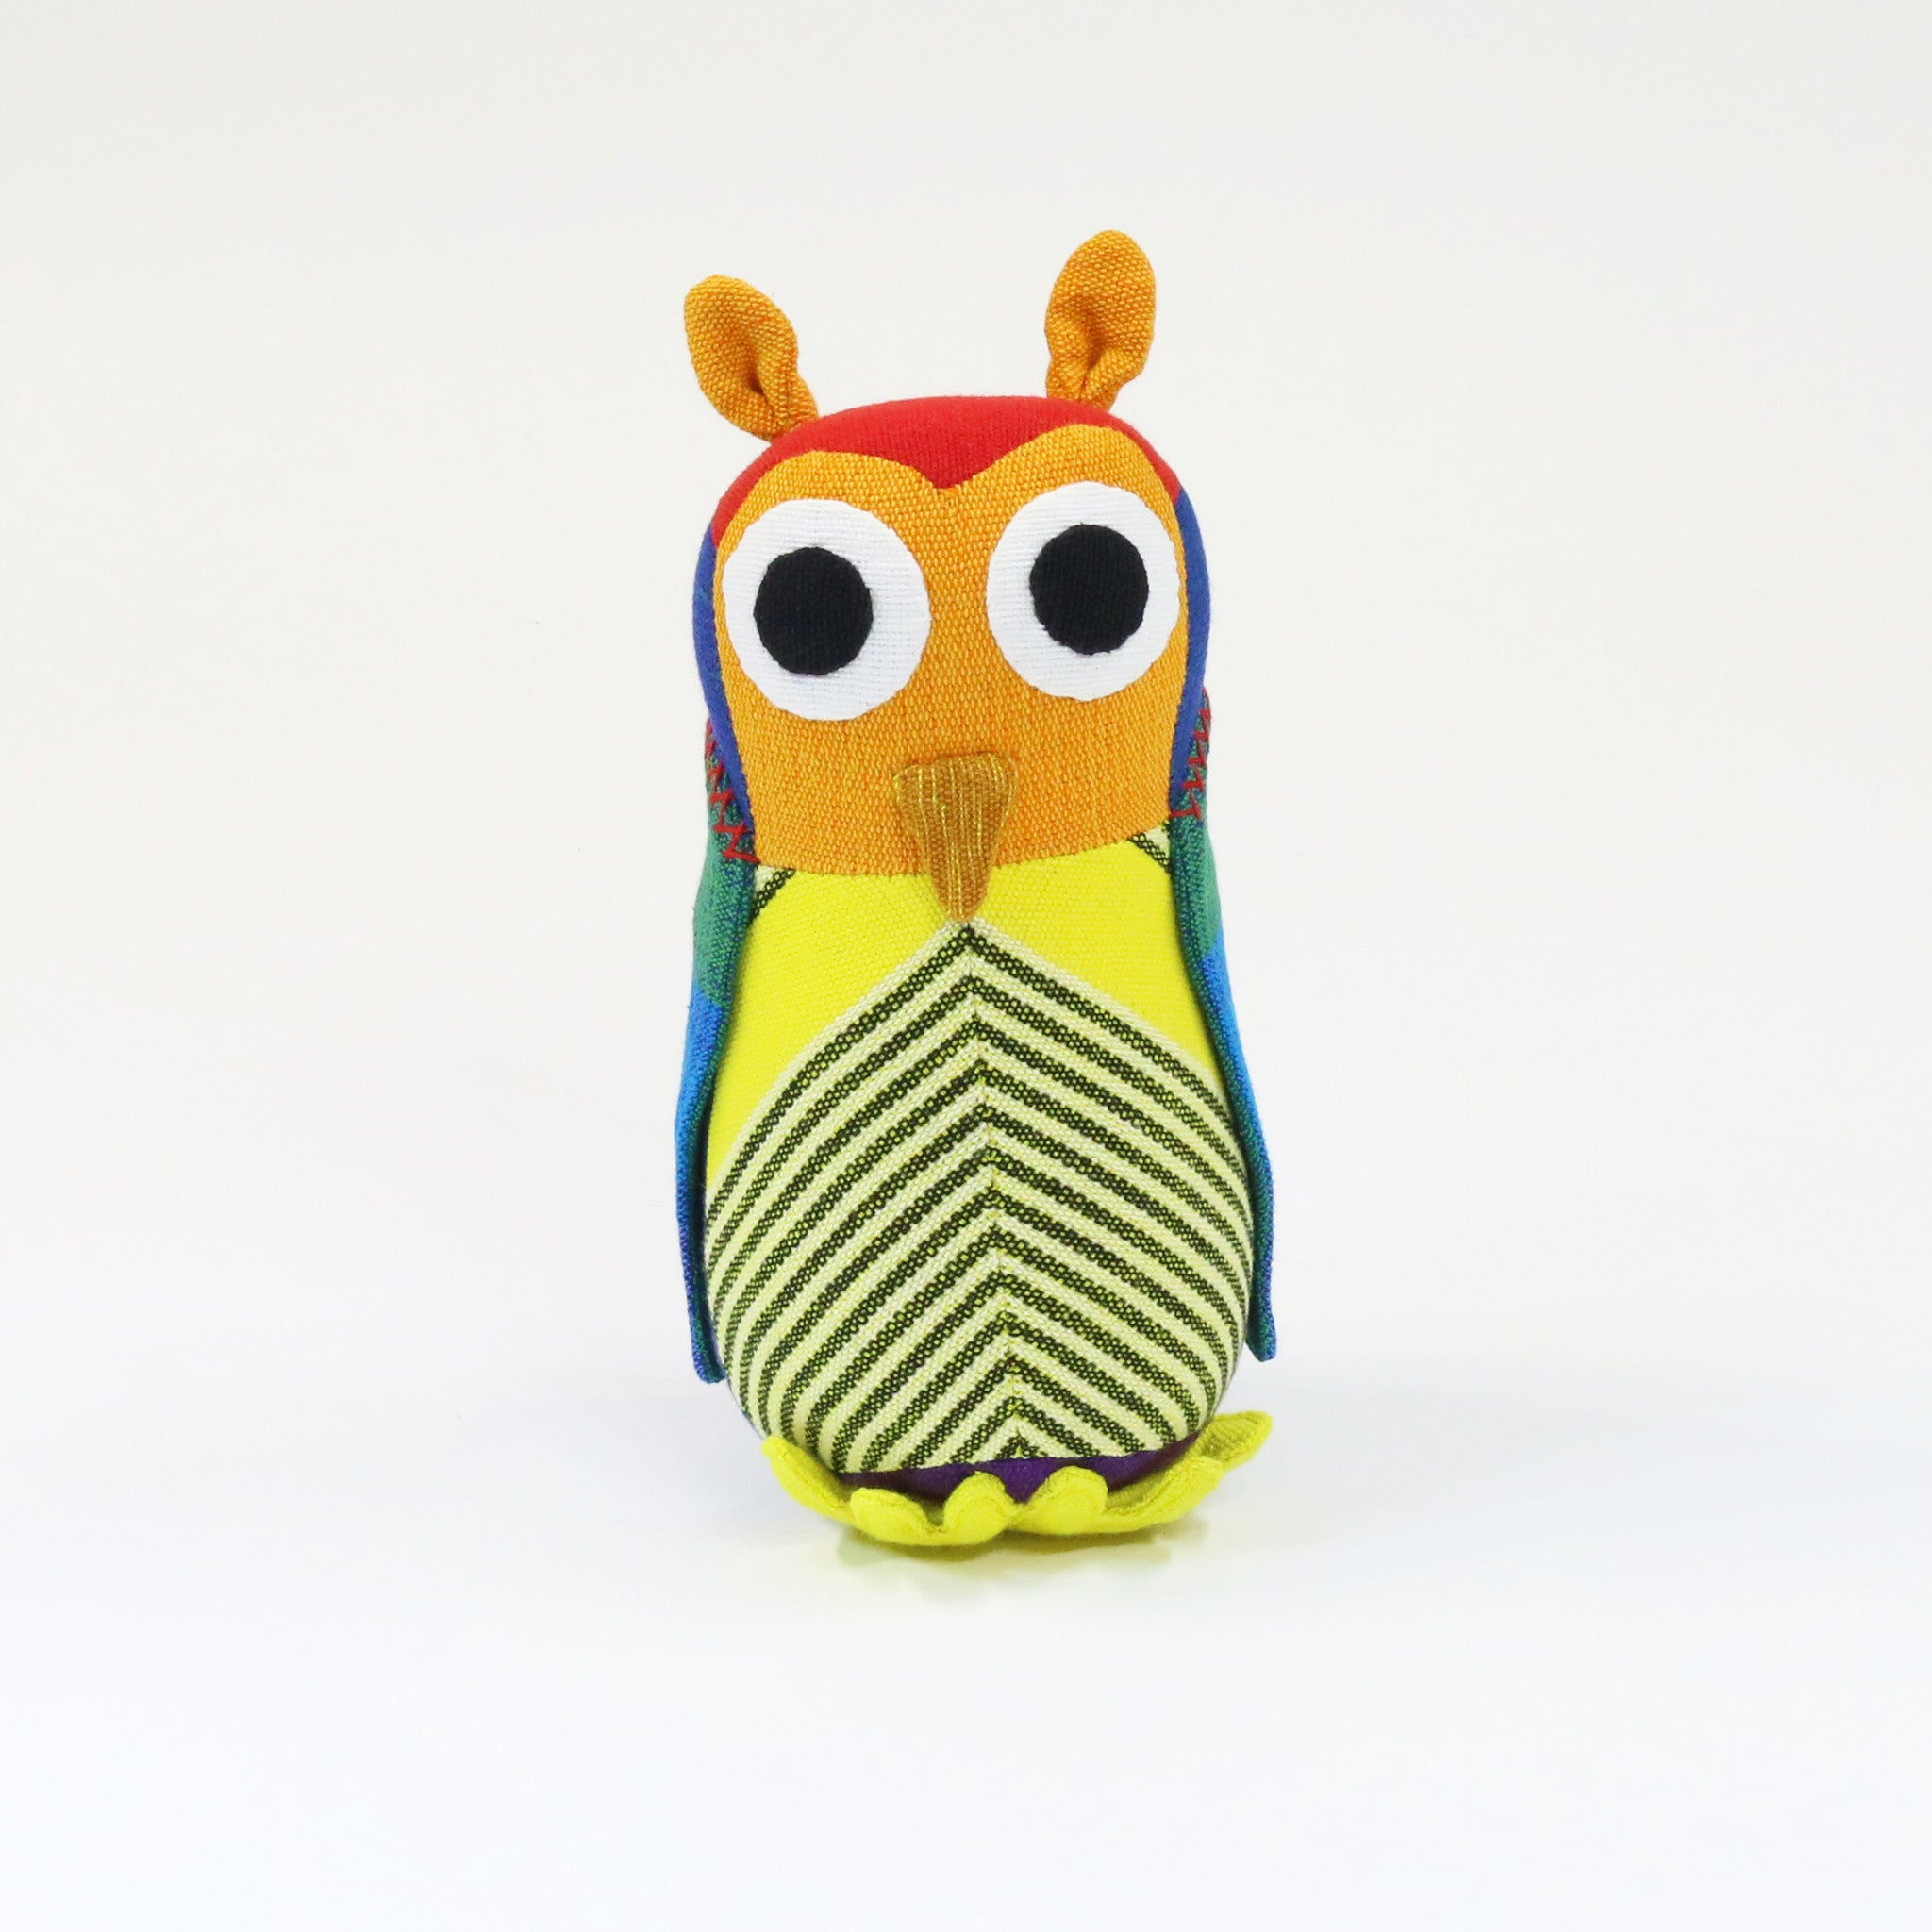 Howie, the Owl (small size)